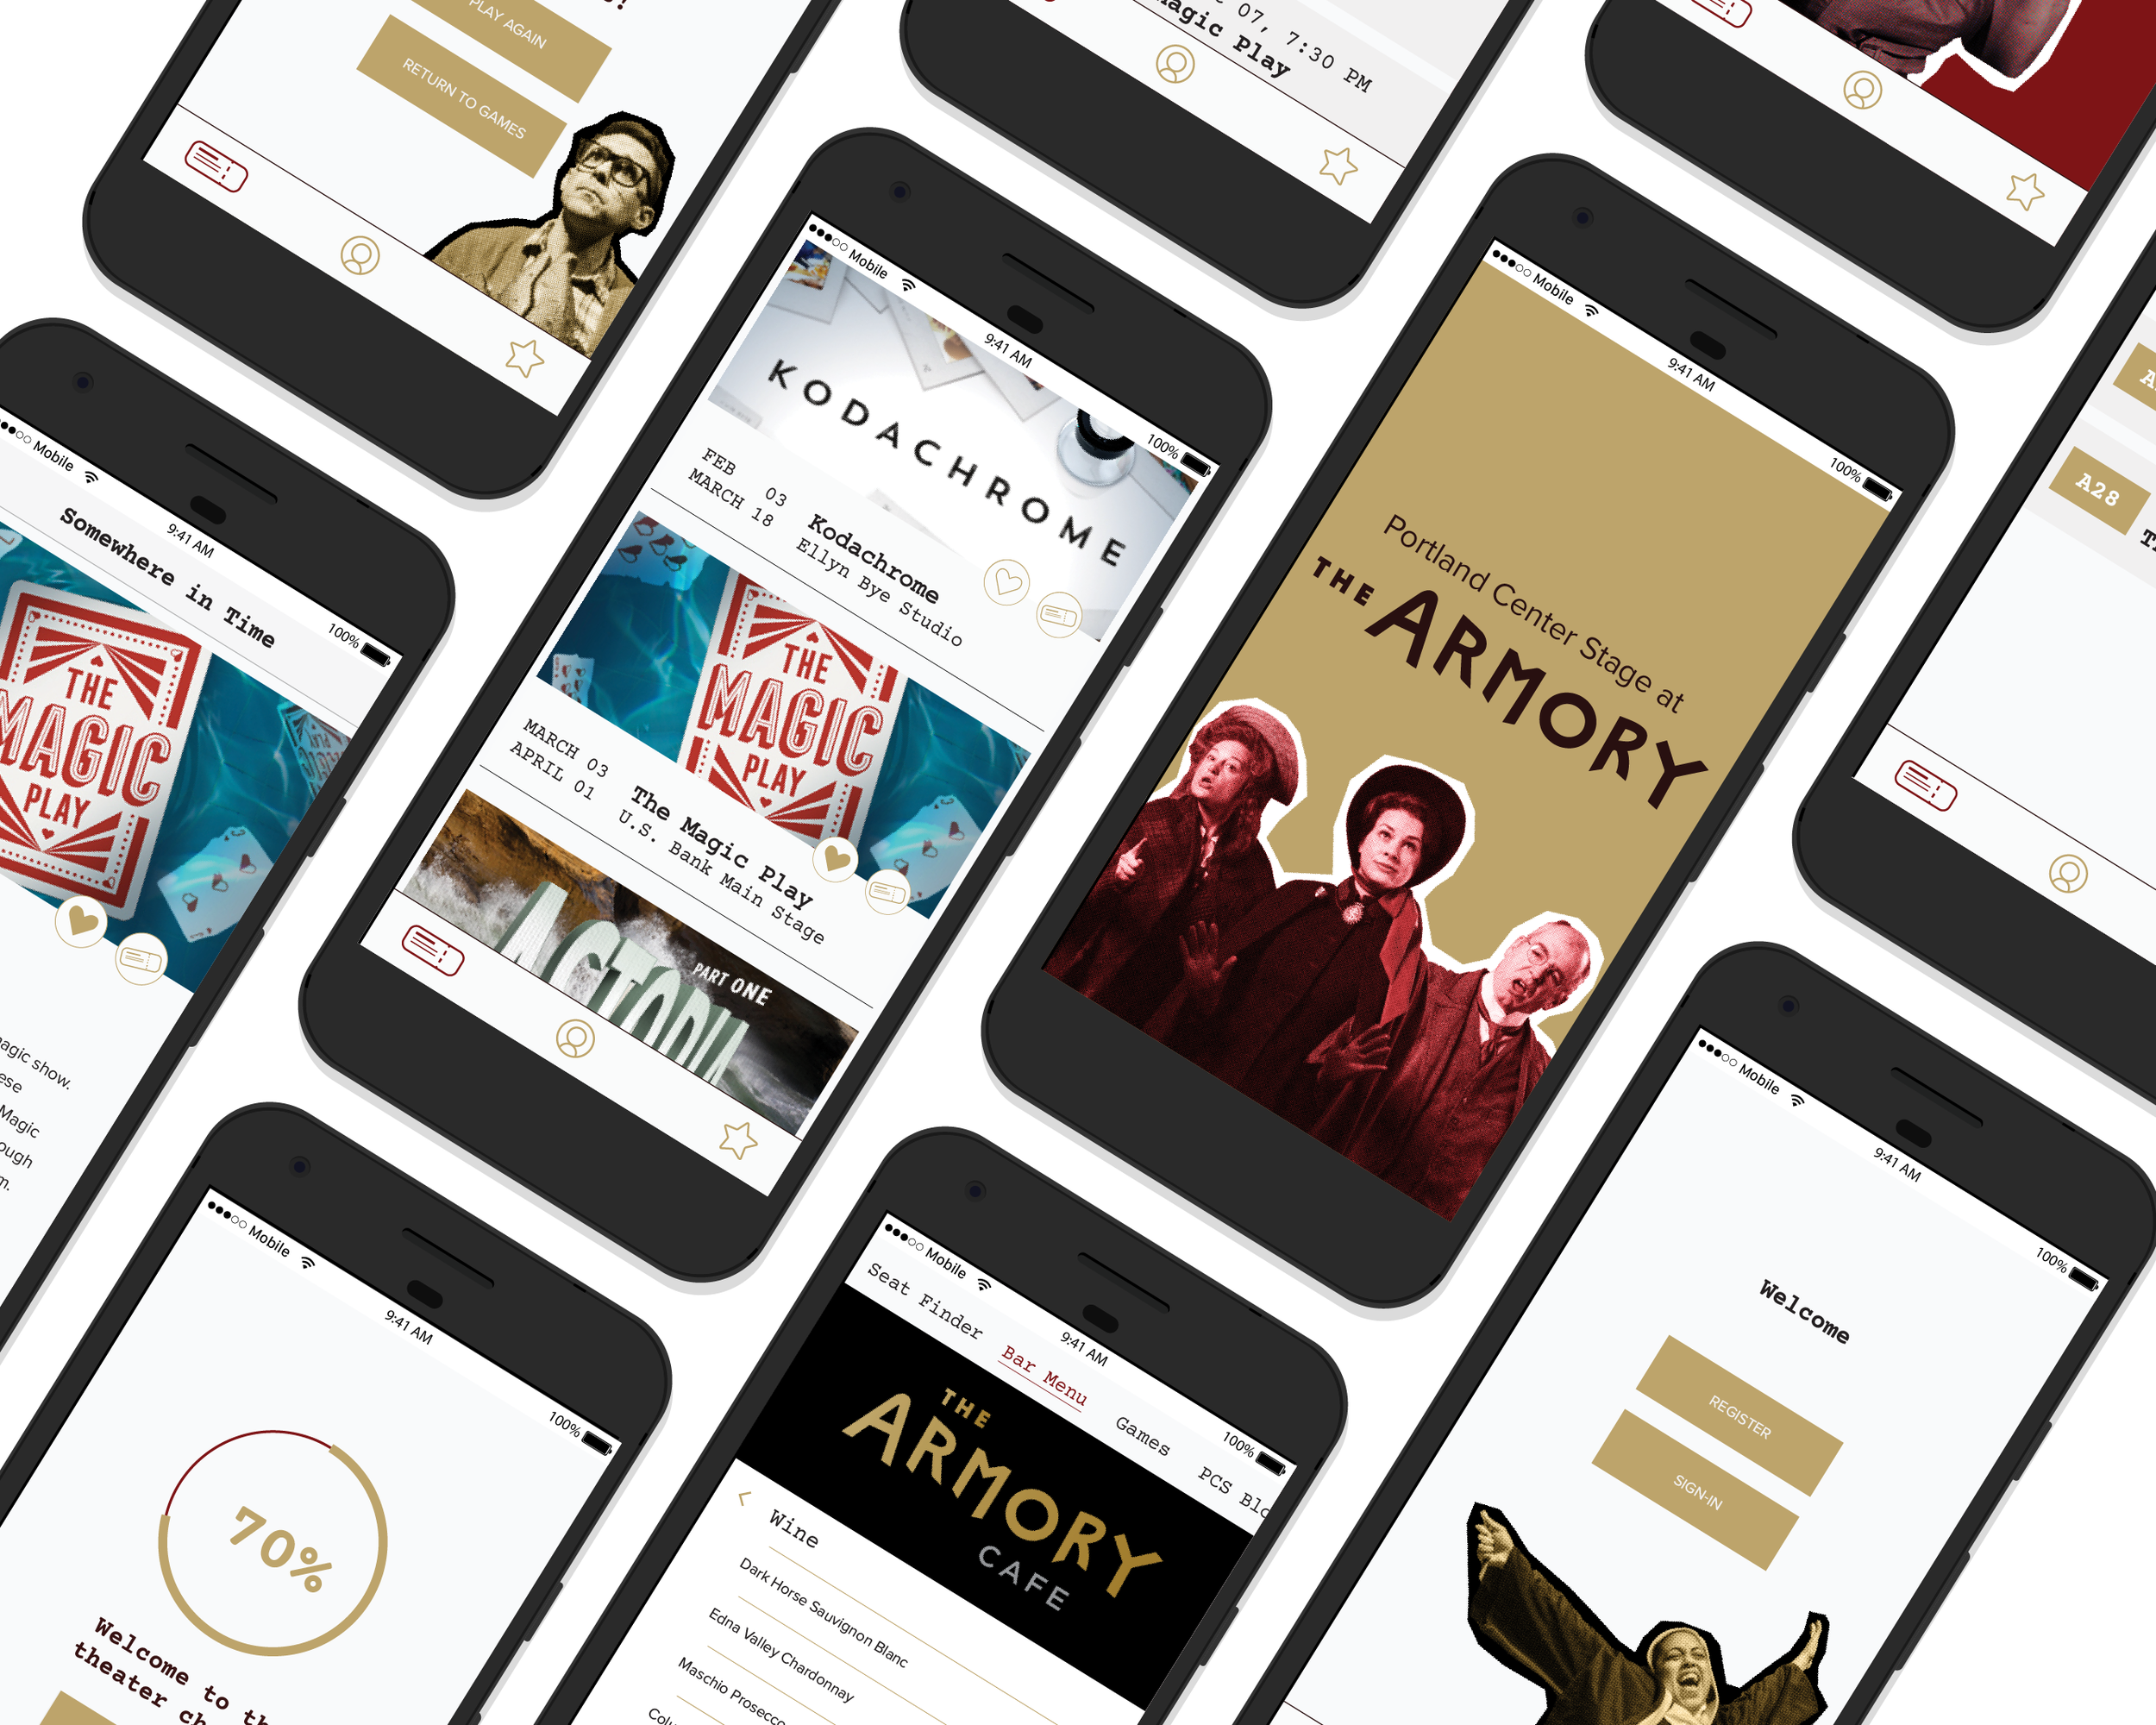 PORTLAND CENTER STAGE - MOBILE APP DESIGN